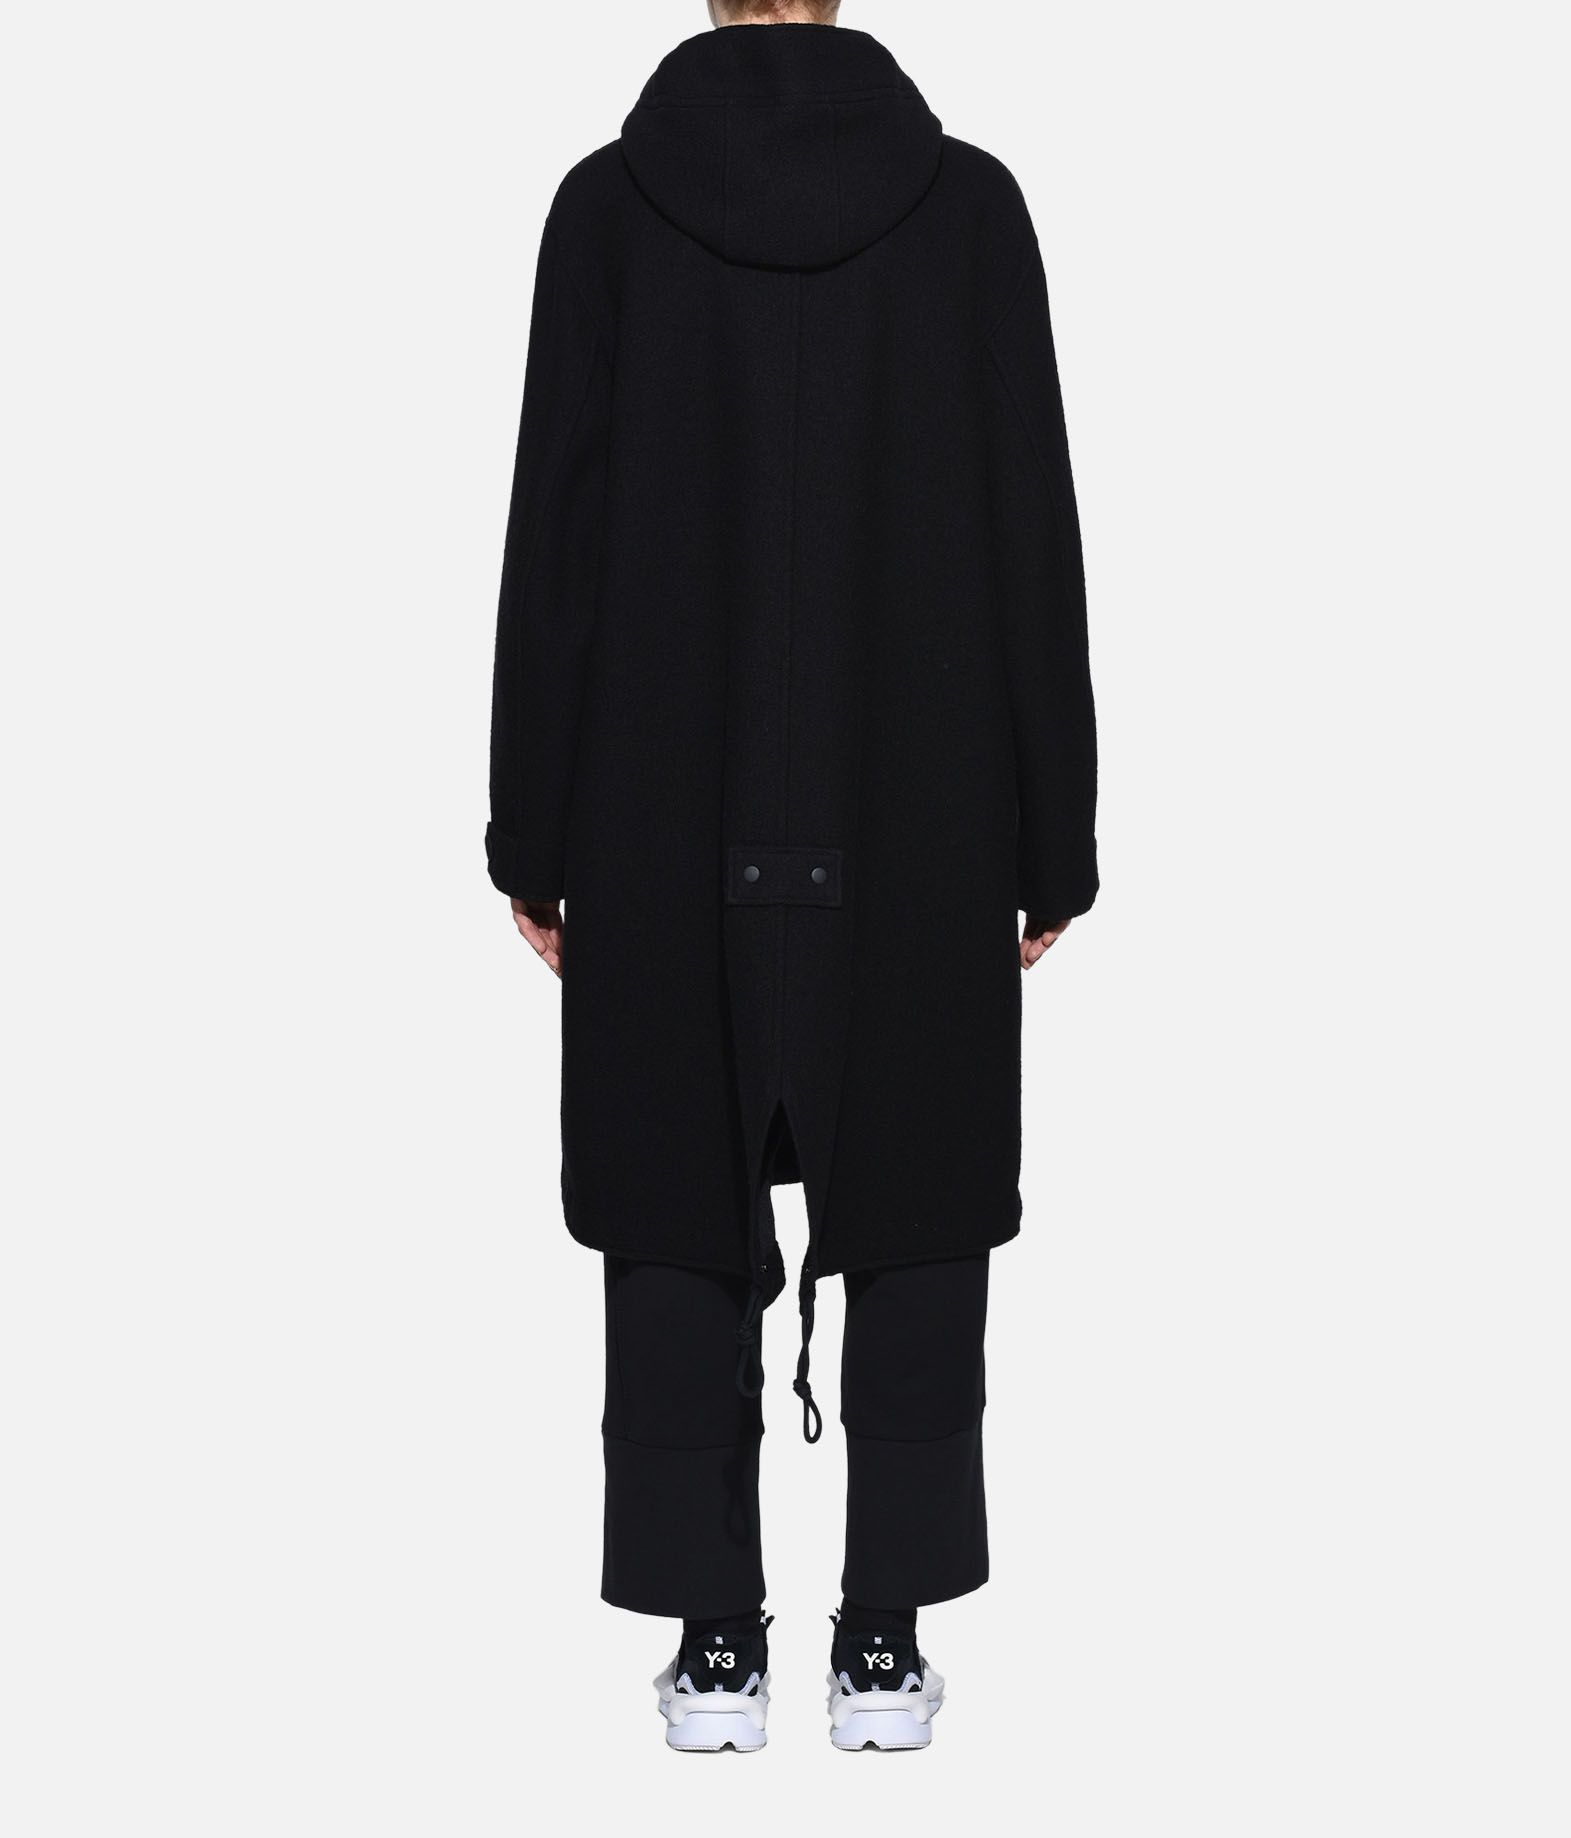 Y-3 Y-3 Reversible Wool Parka Coat Woman d